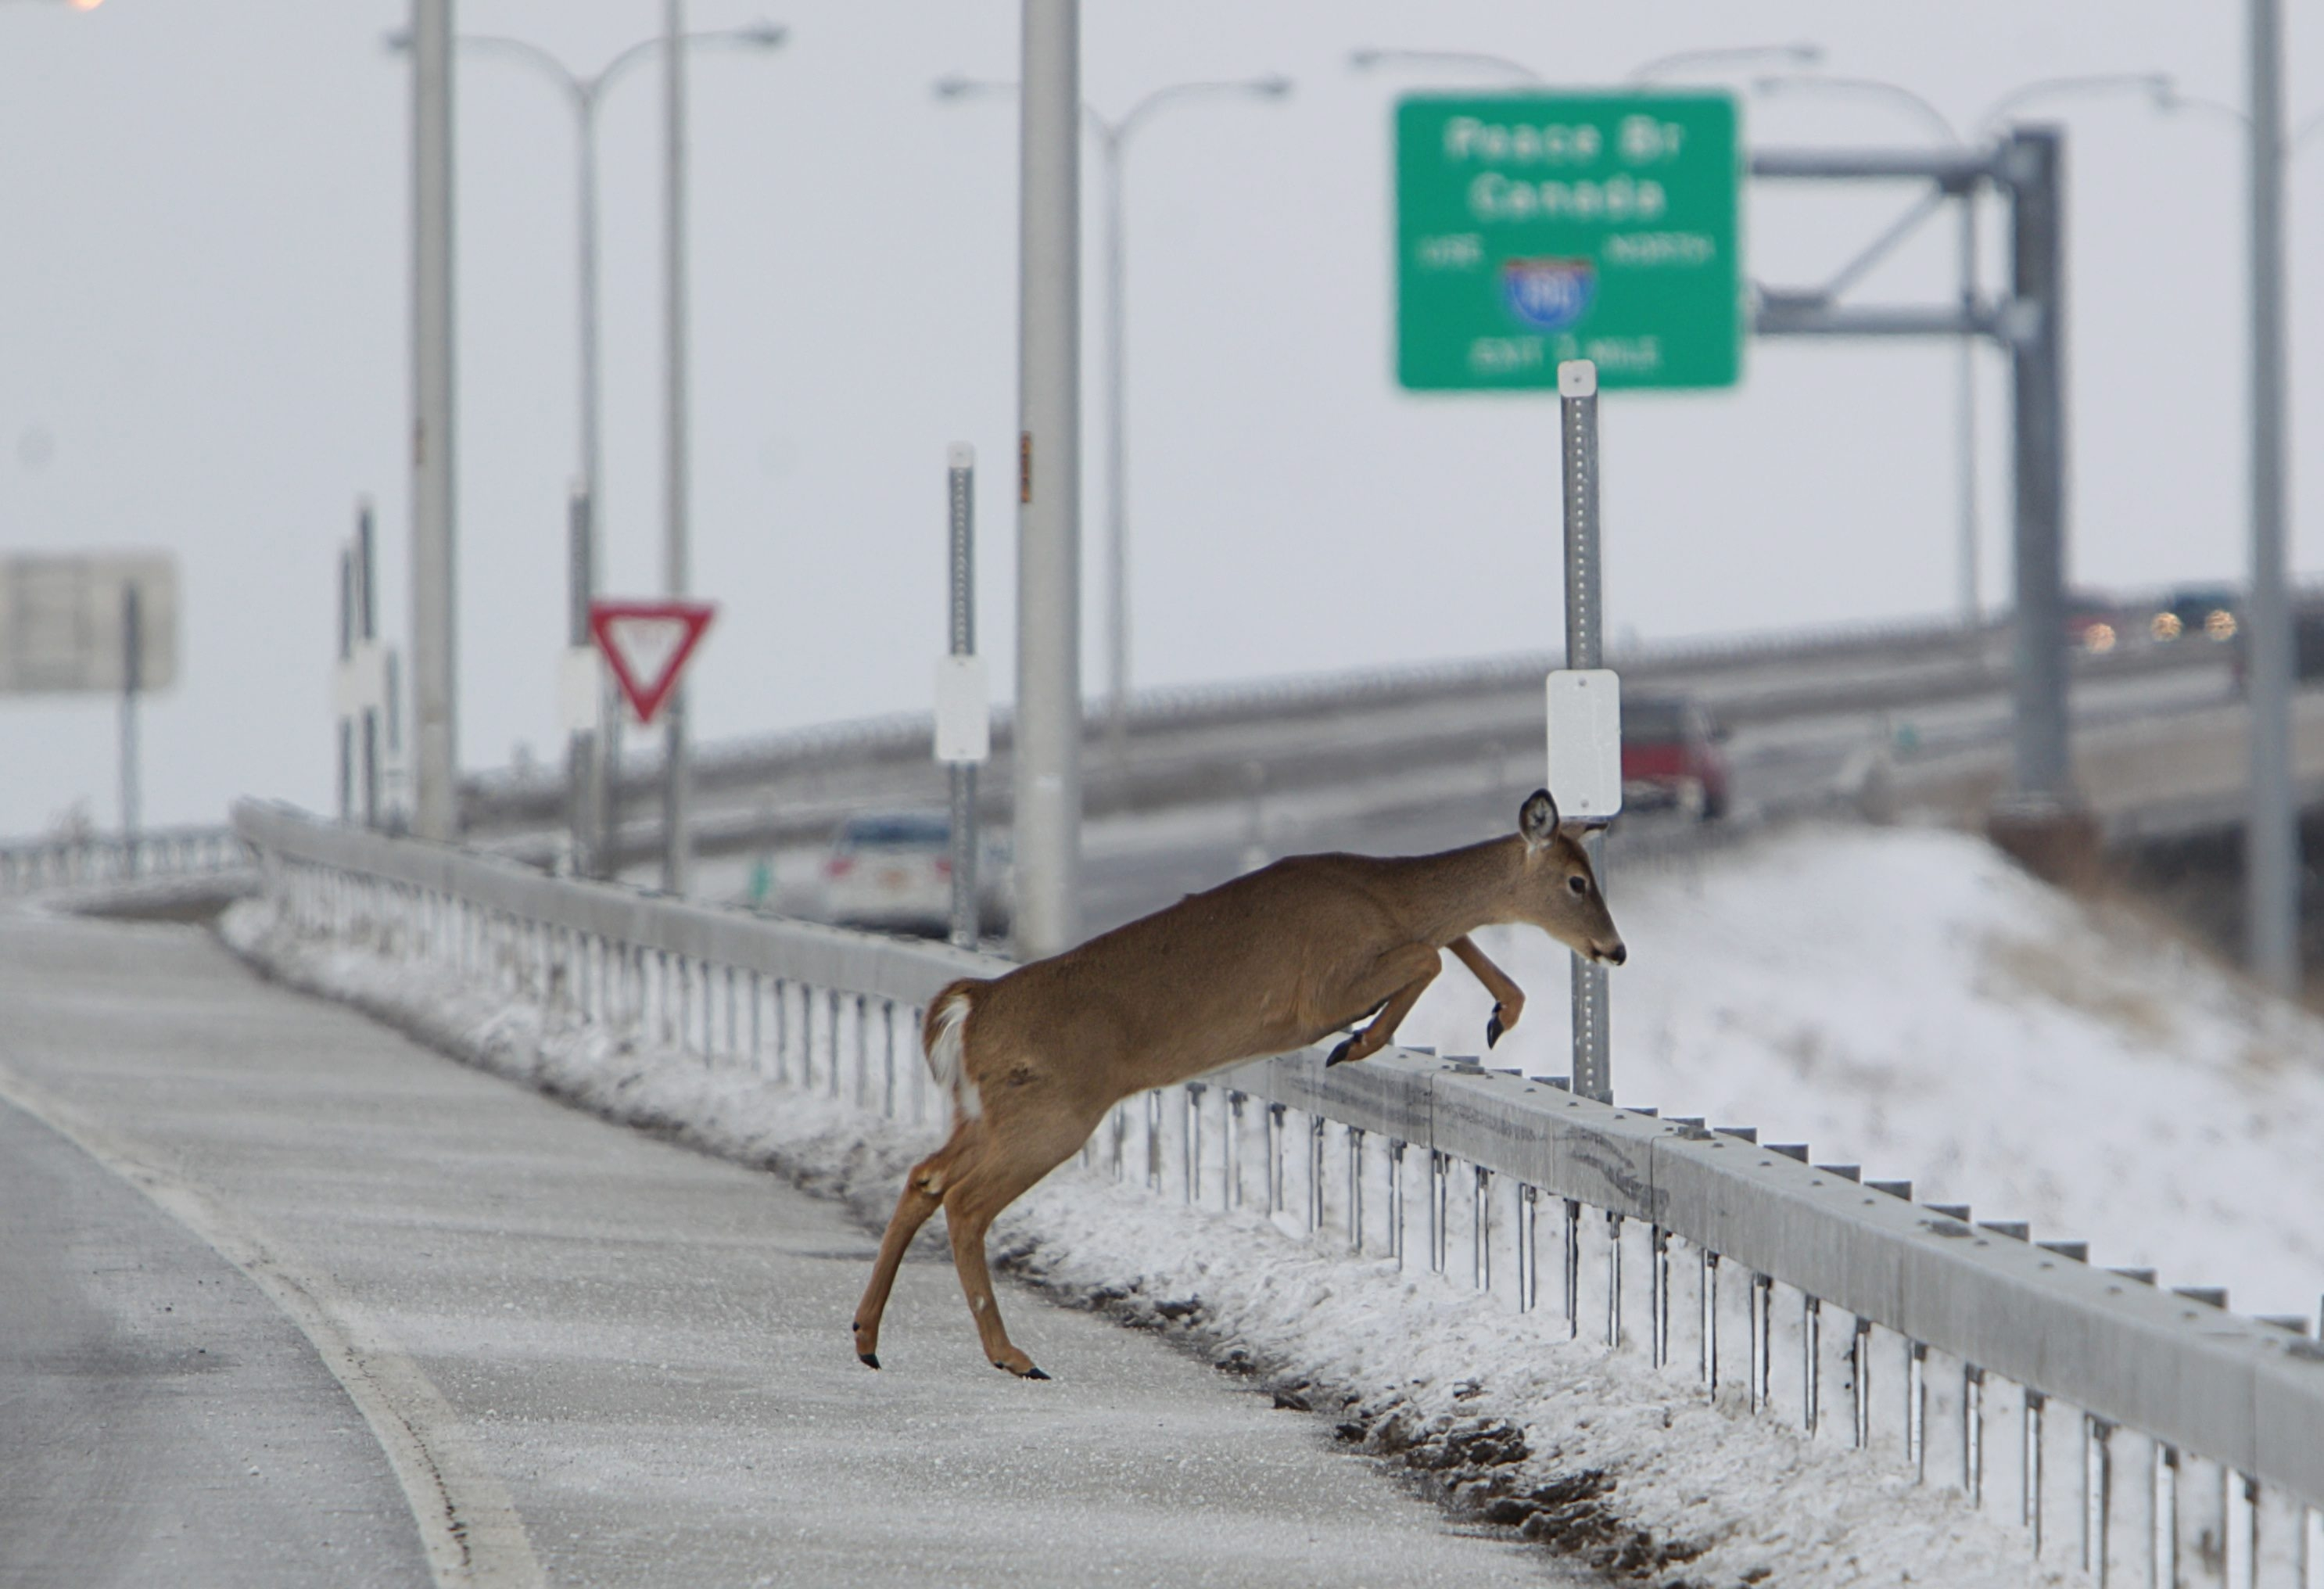 Autumn is most dangerous season for vehicle-deer crashes, collisions